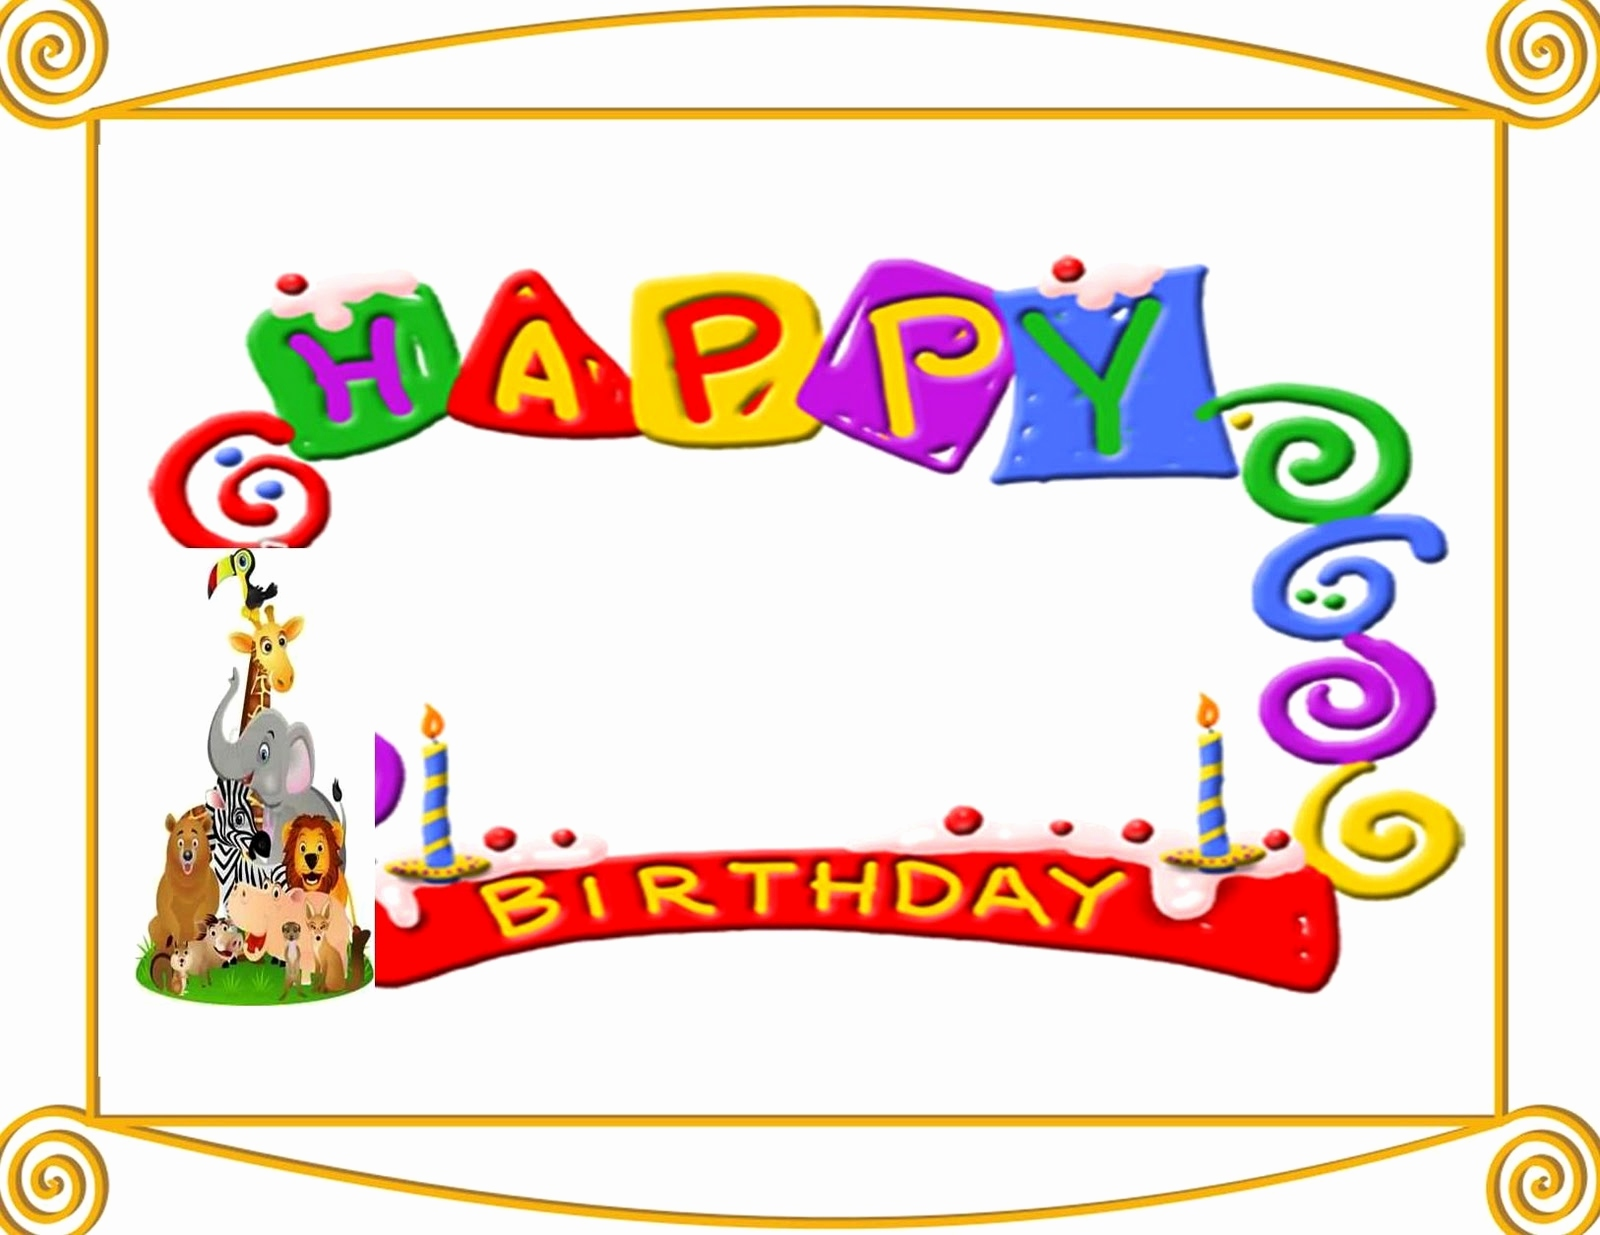 happy birthday word clipart ; free-birthday-greeting-cards-fresh-cards-clipart-happy-birthday-pencil-and-in-color-cards-clipart-of-free-birthday-greeting-cards